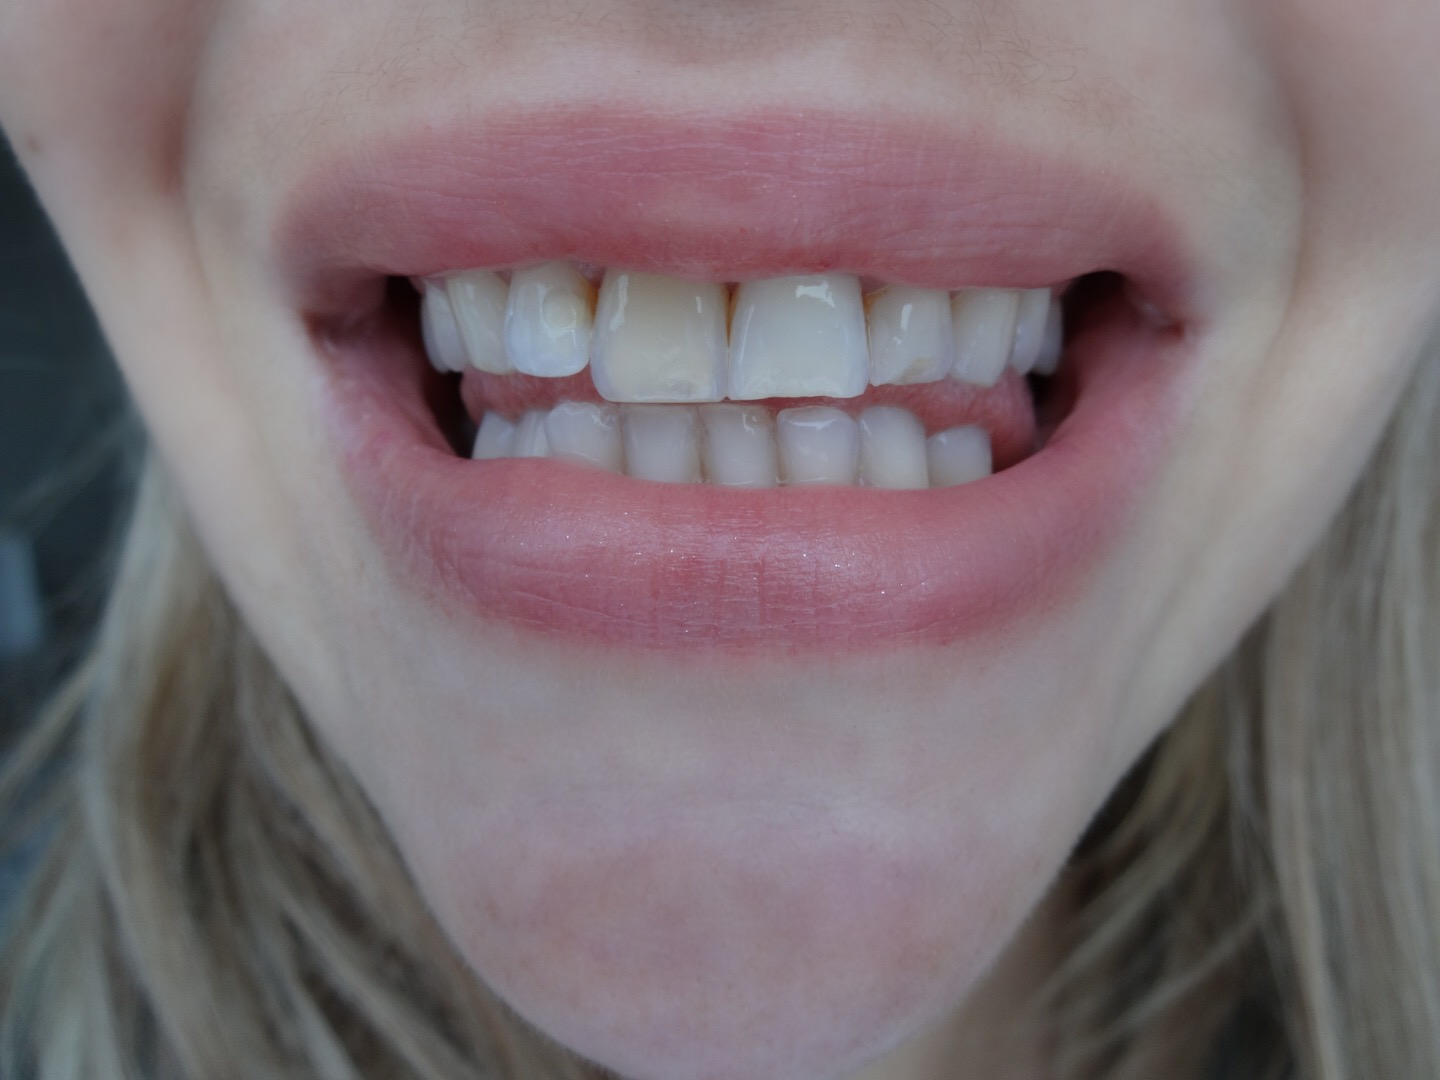 http://www.smilebrilliant.com/articles/benifits-of-choosing-custom-fitted-teeth-whitening-trays#stylistsharon